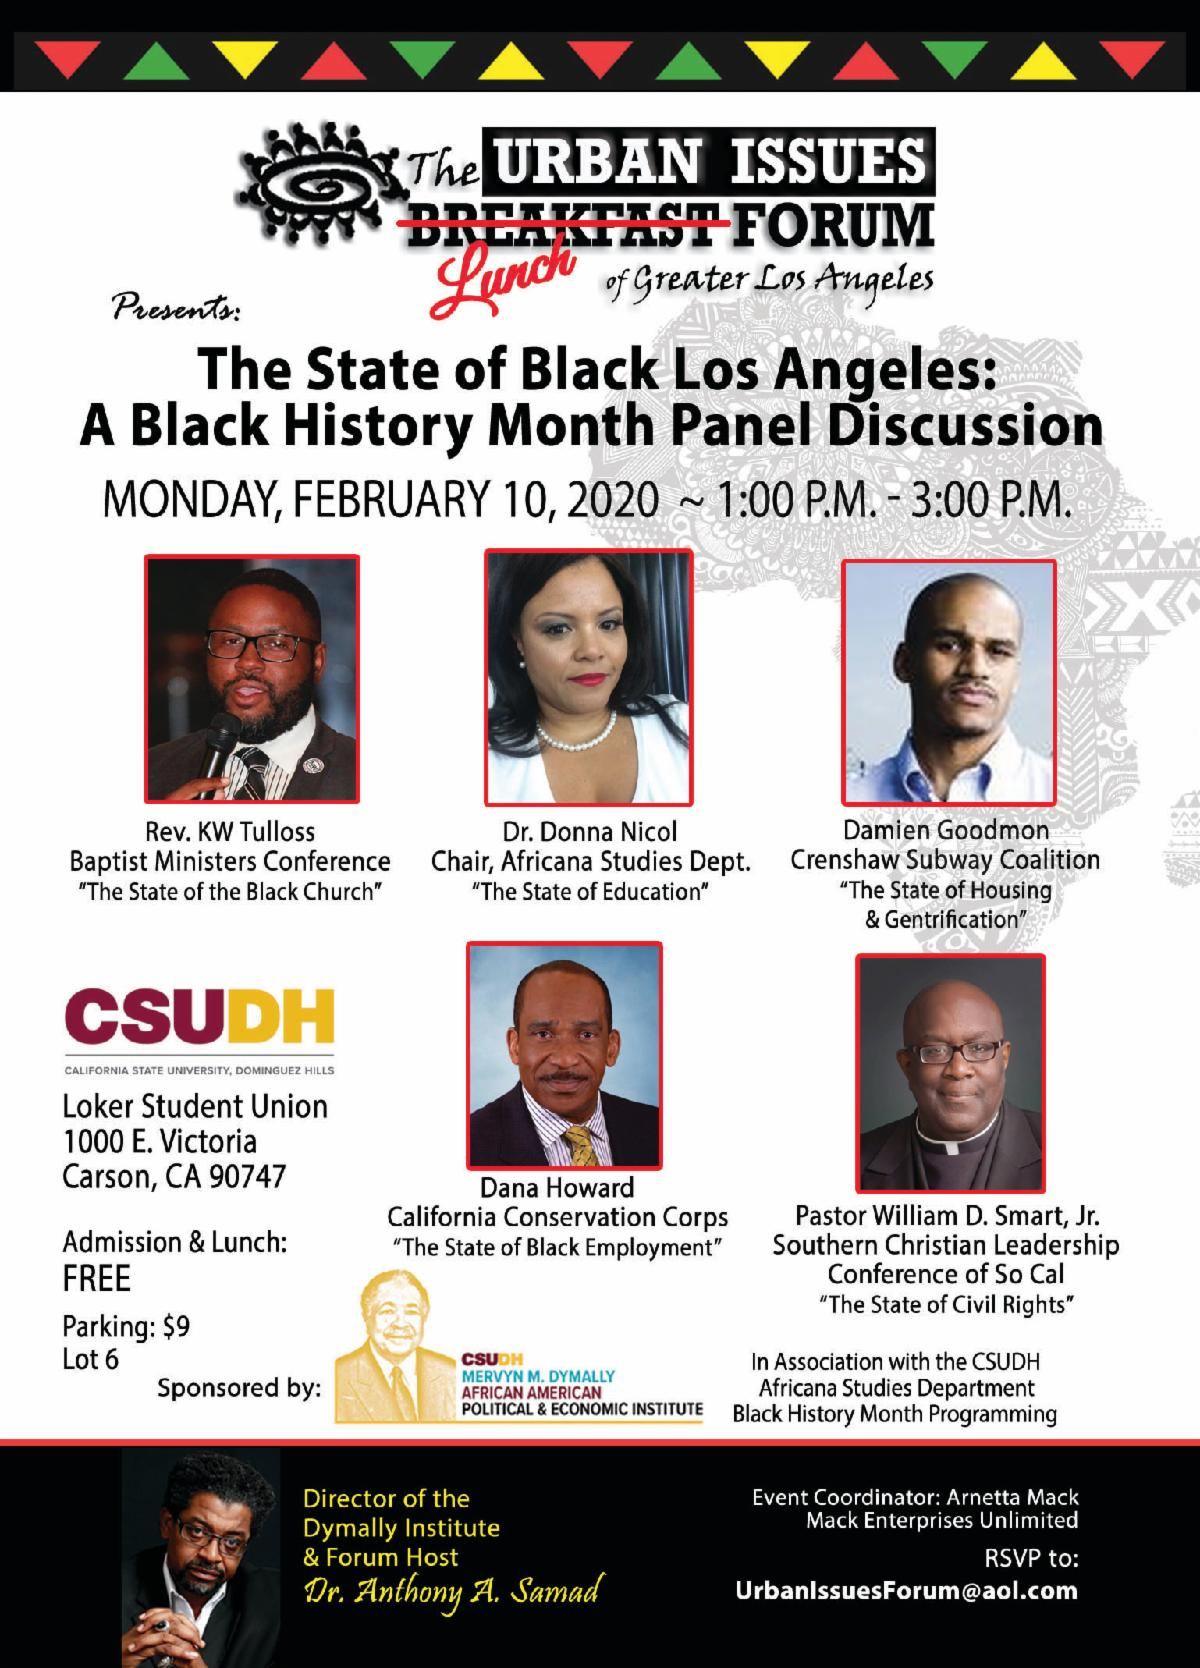 The State of Black Los Angeles Lunch Forum